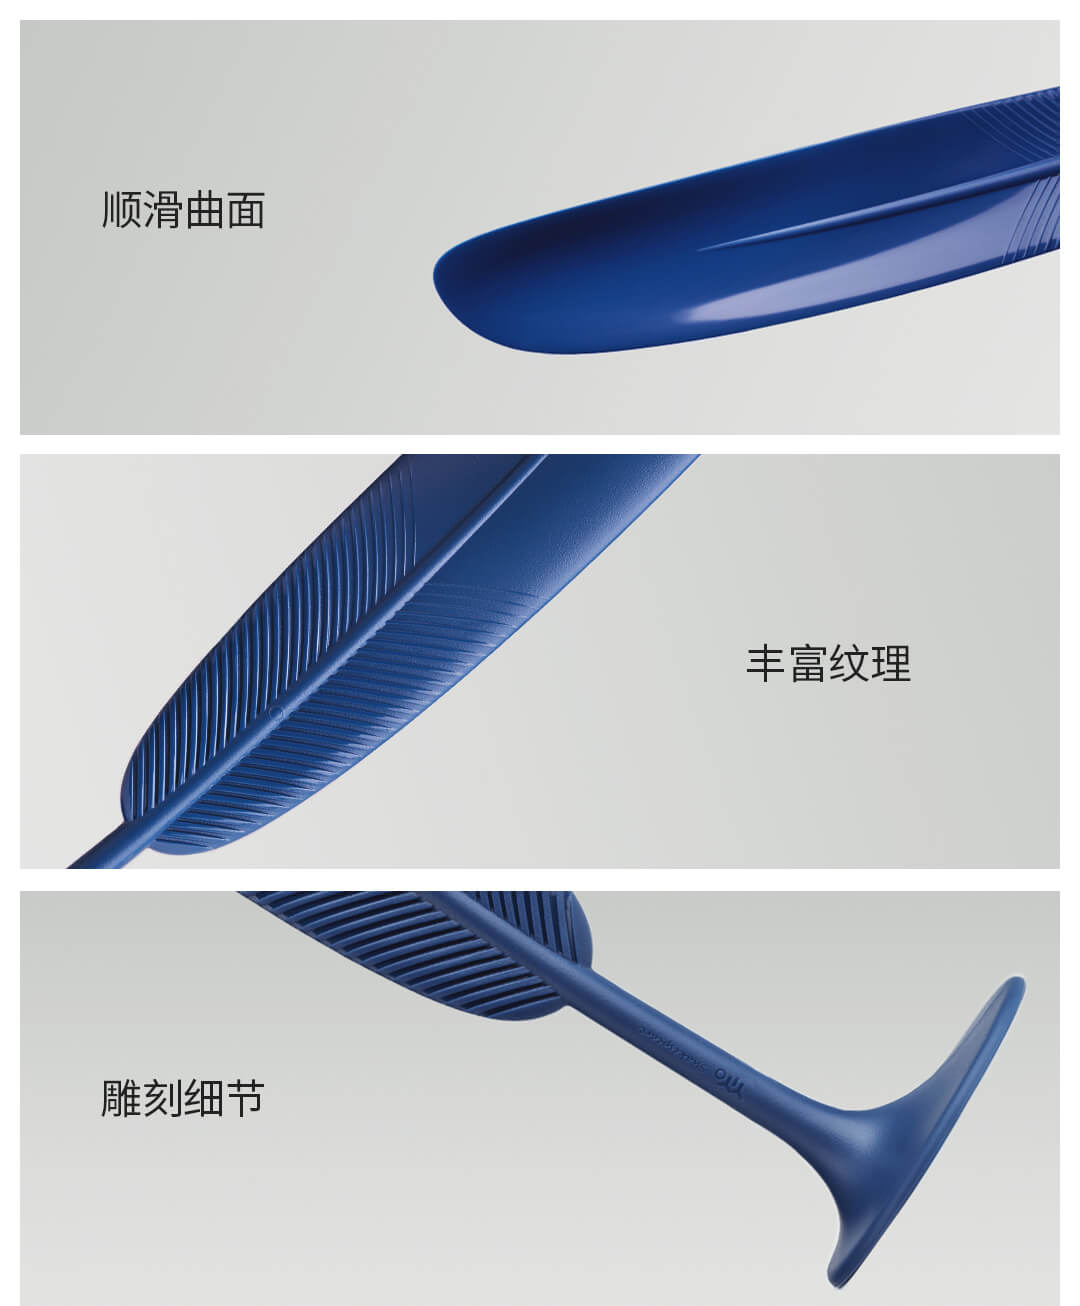 Xiaomi Mijia YIYOHOME Feather Professional Shoe Horn Spoon Shape Shoehorn Shoe Lifter Flexible Sturdy Slip New Exotic Design